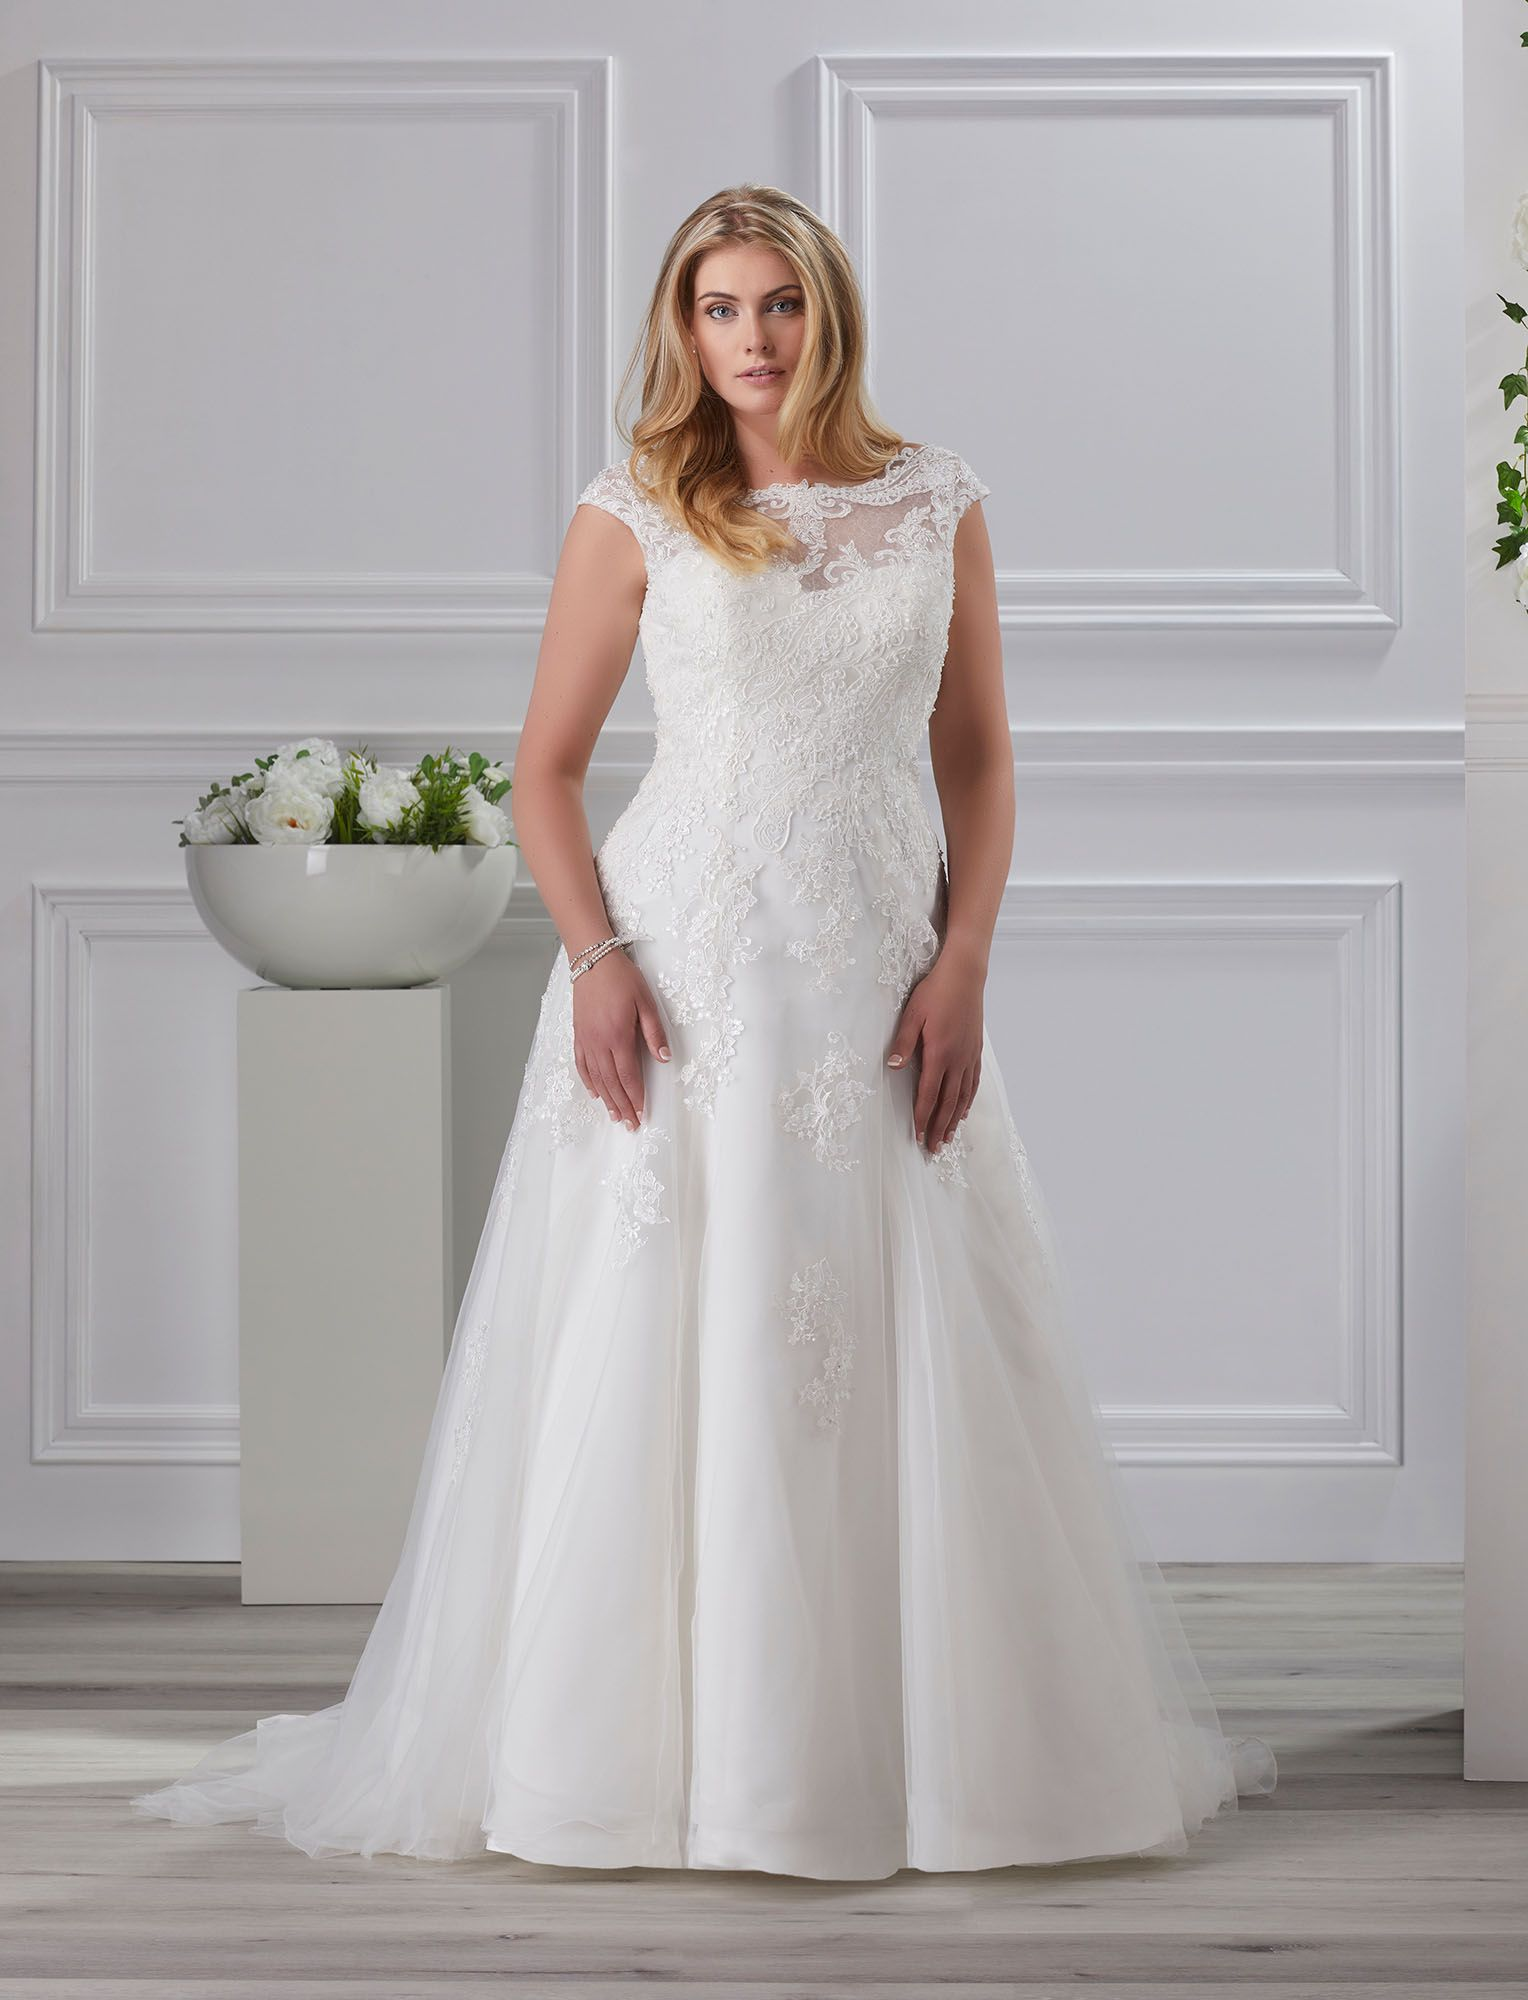 Très Chic Bridal and Evening Wear Collection 2018